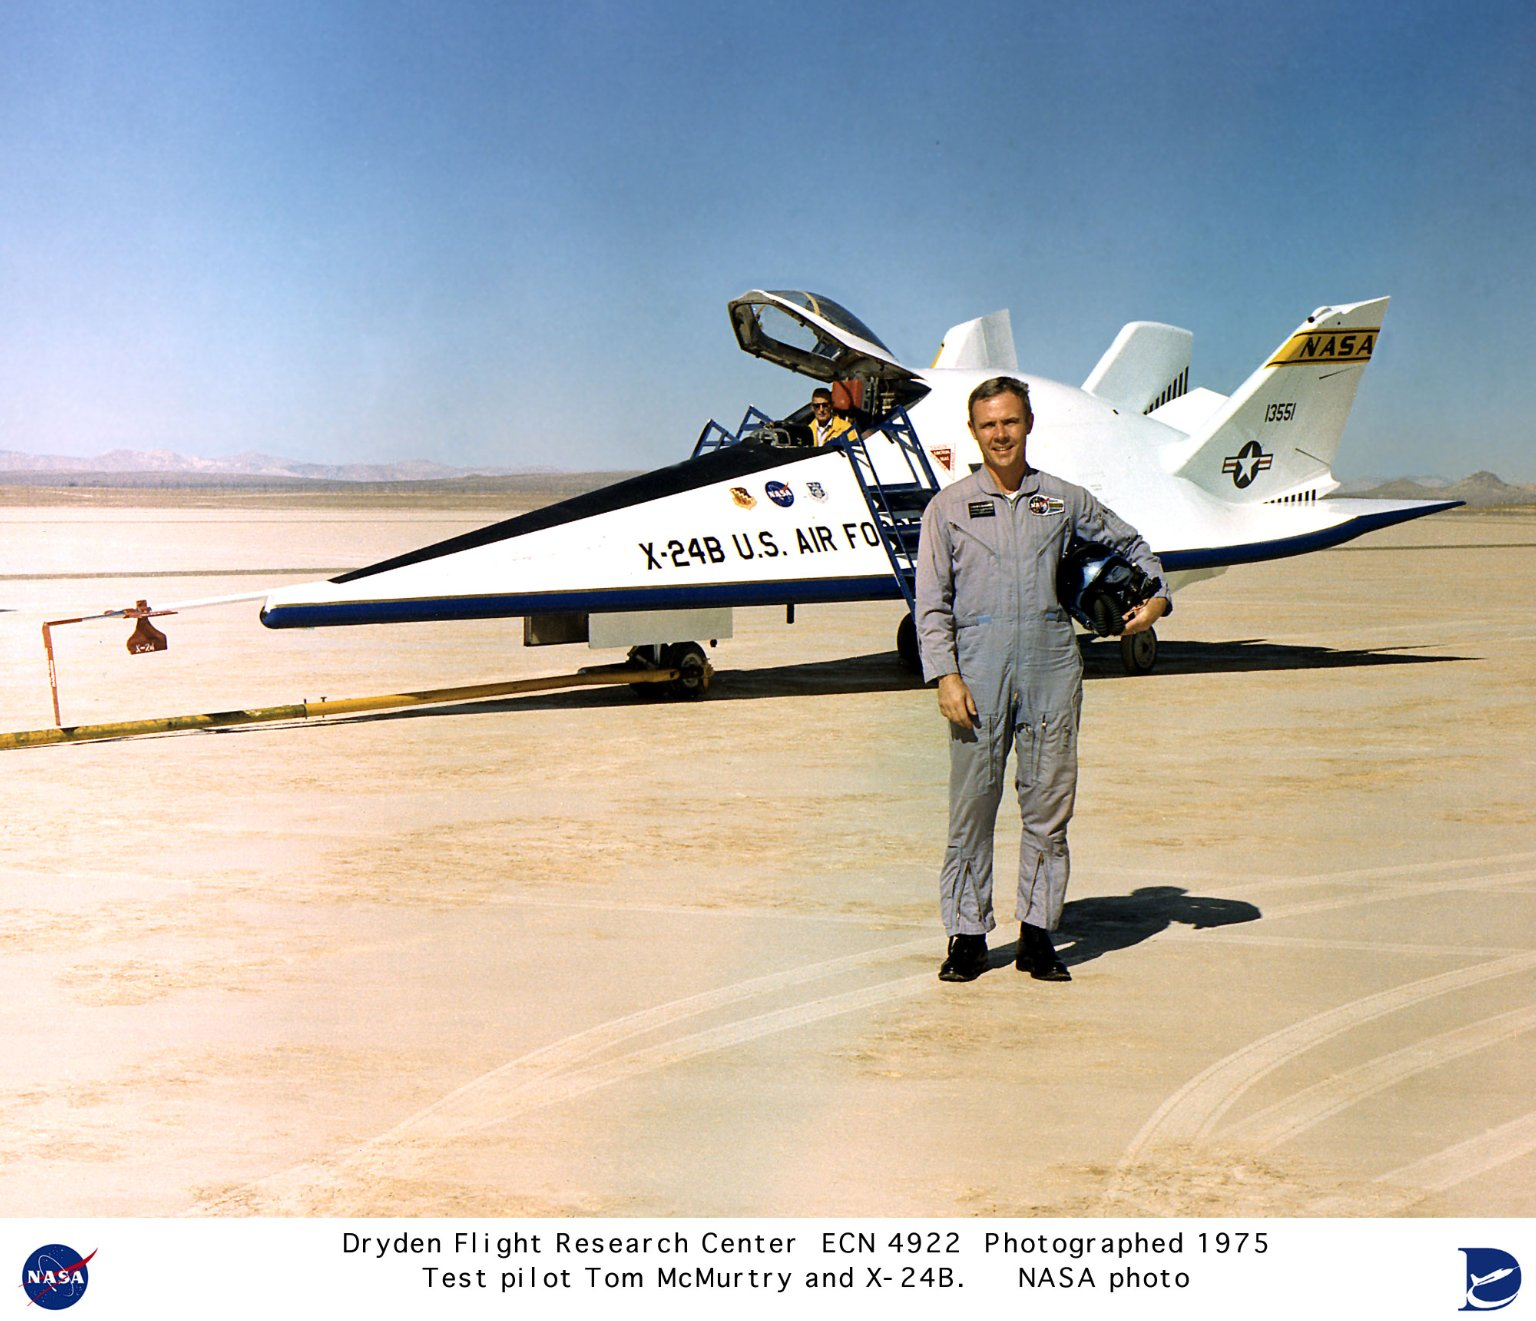 X-24B with Test Pilot Tom McMurtry